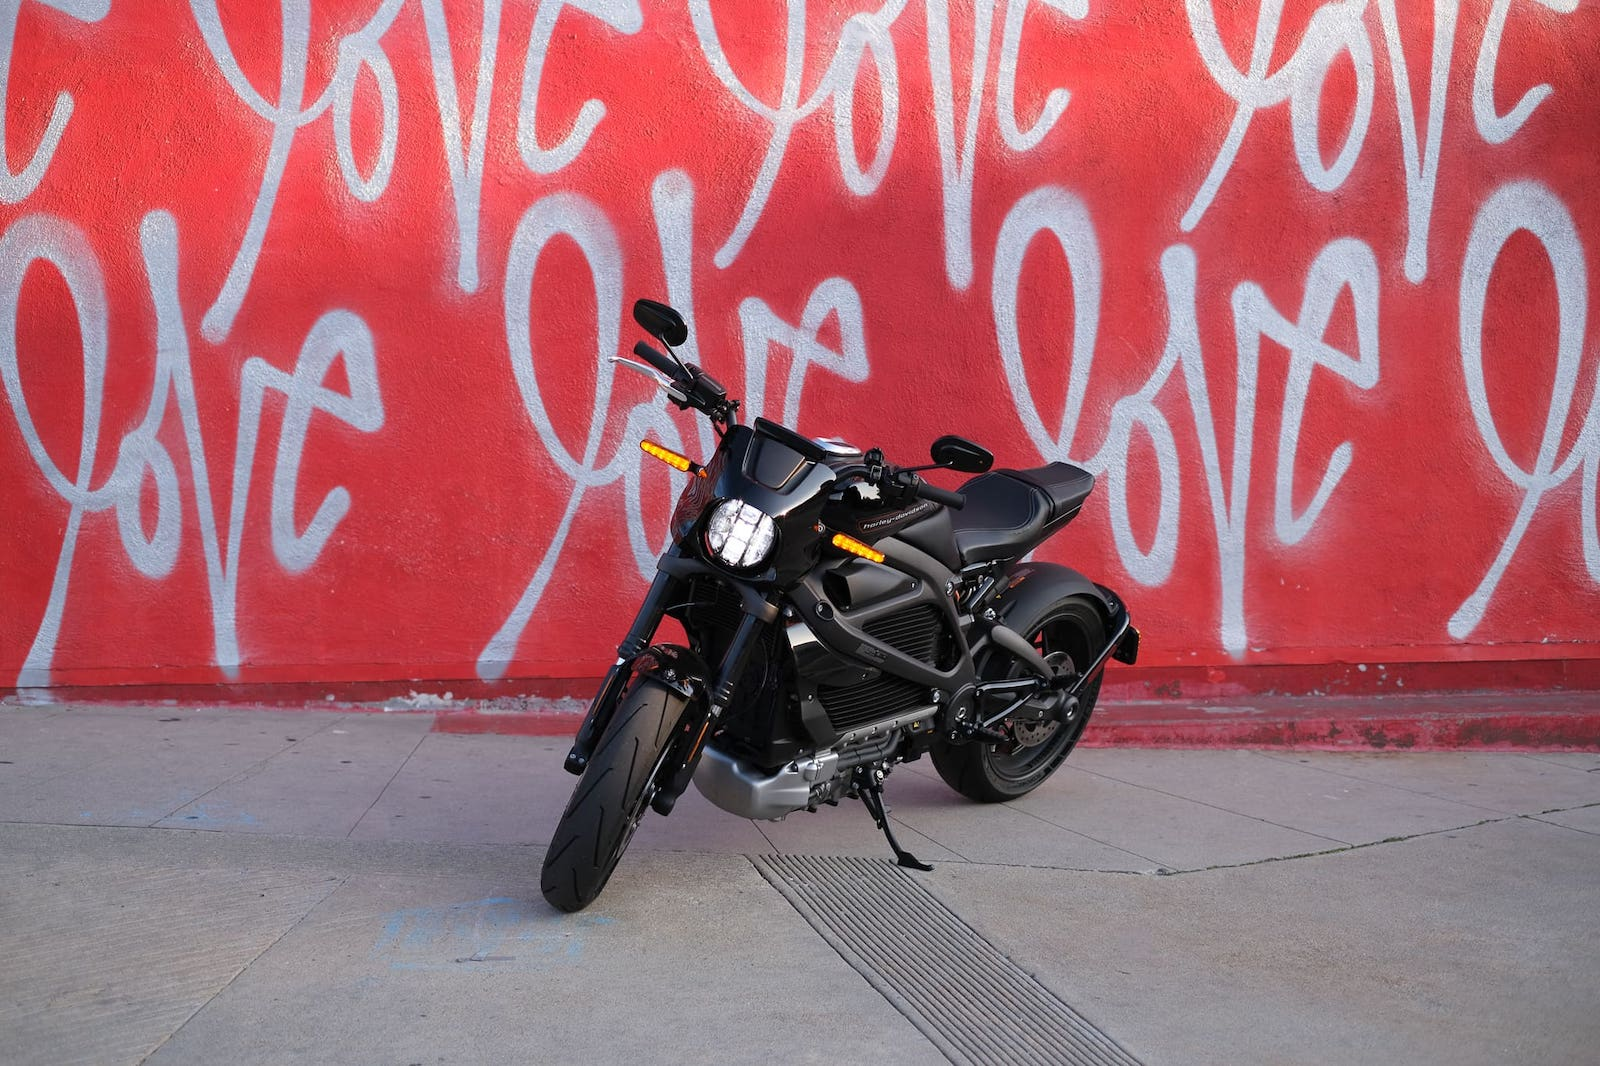 Harley Davidson LiveWire, Instagram love wall in Los Angeles